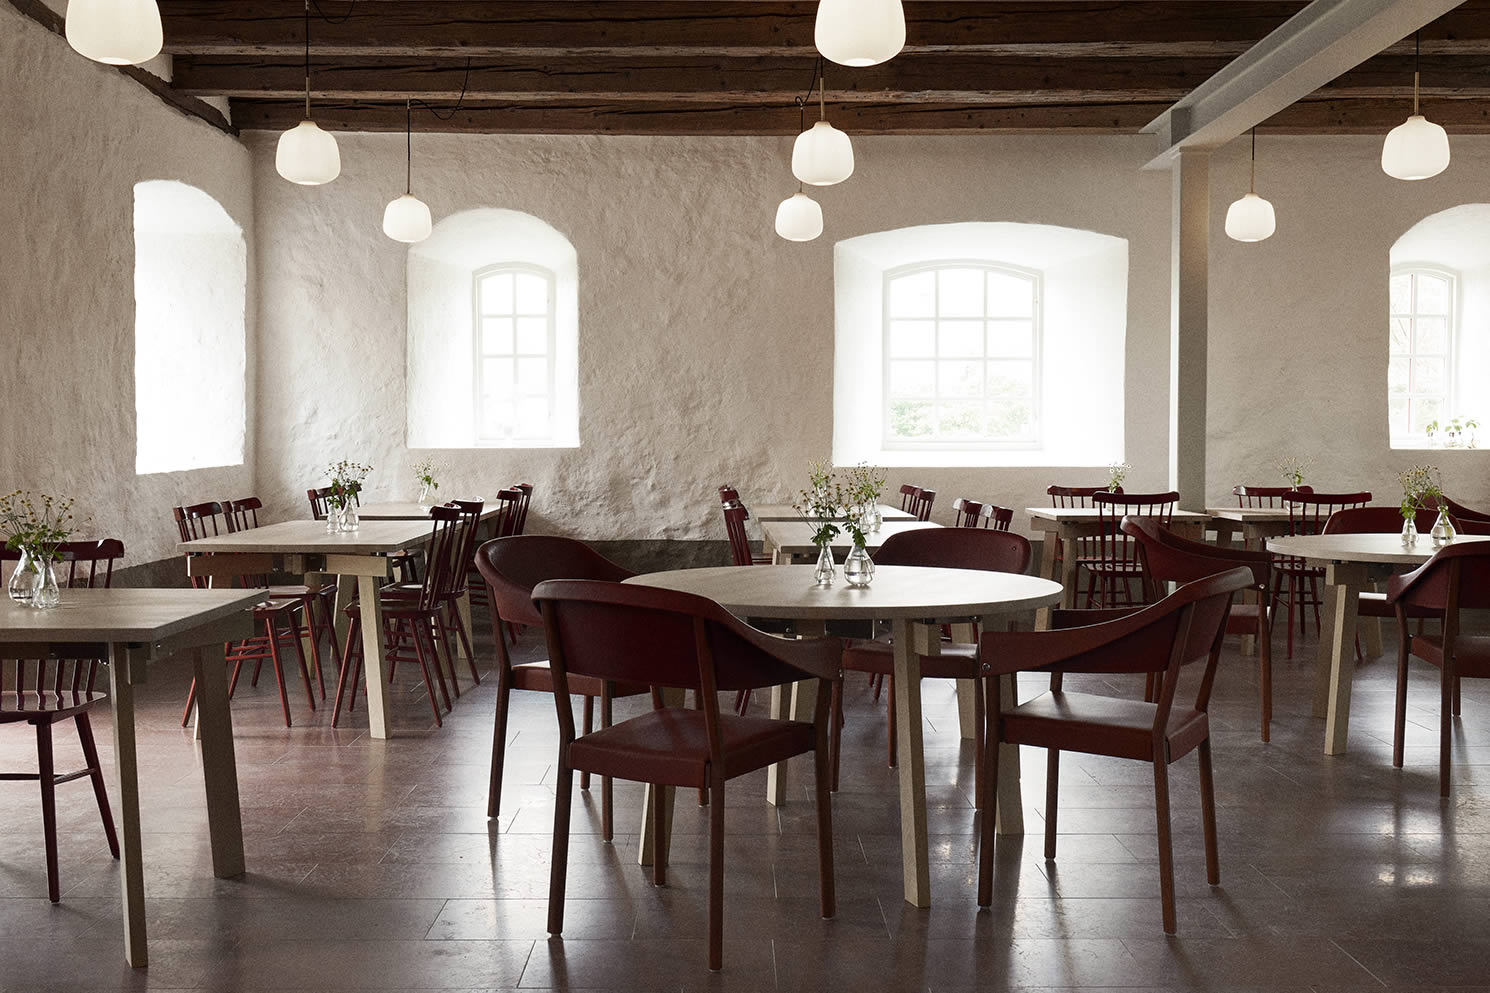 Wanås Restaurant with table from Blå station and chairs from Gärsnäs covered in leather from the Wanås Estate.